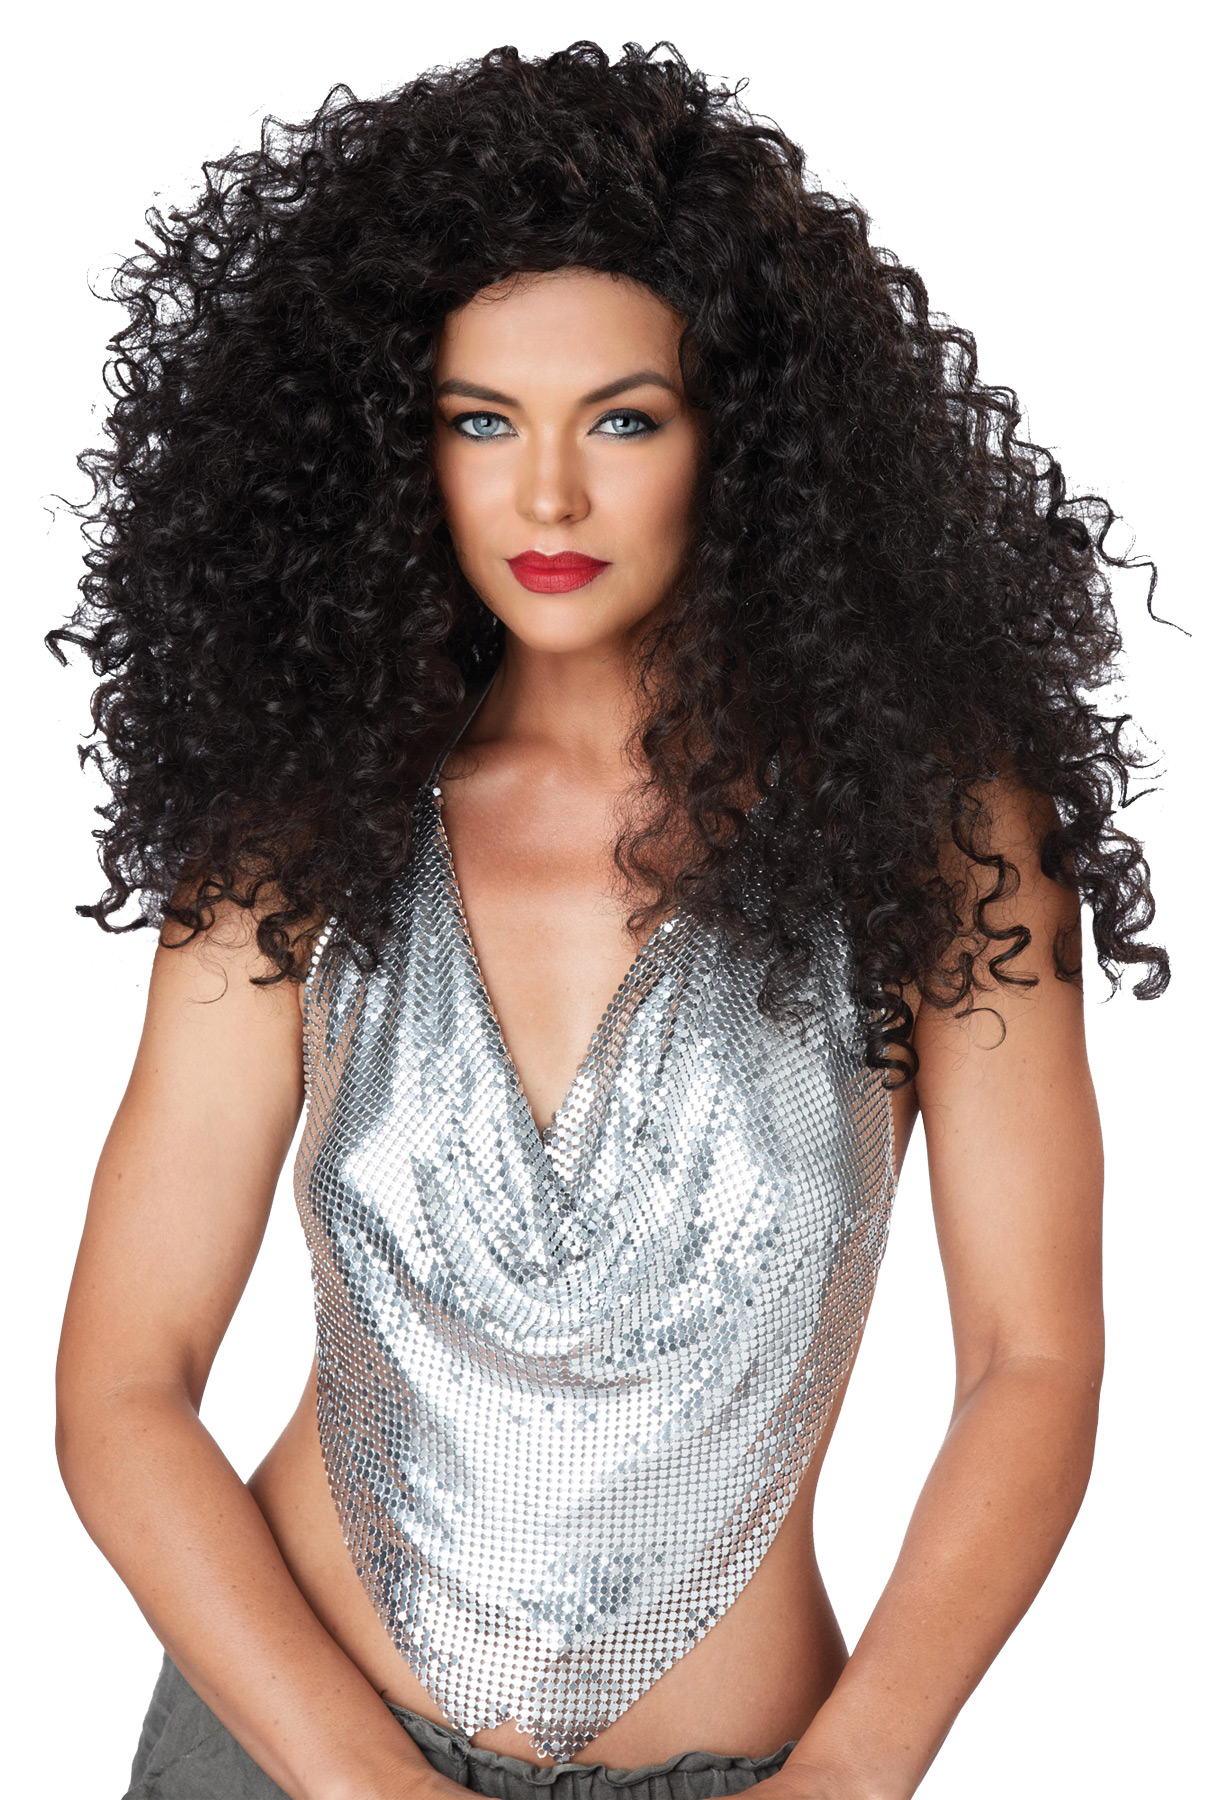 DISCO DIVA DO BRUNETTE WIG